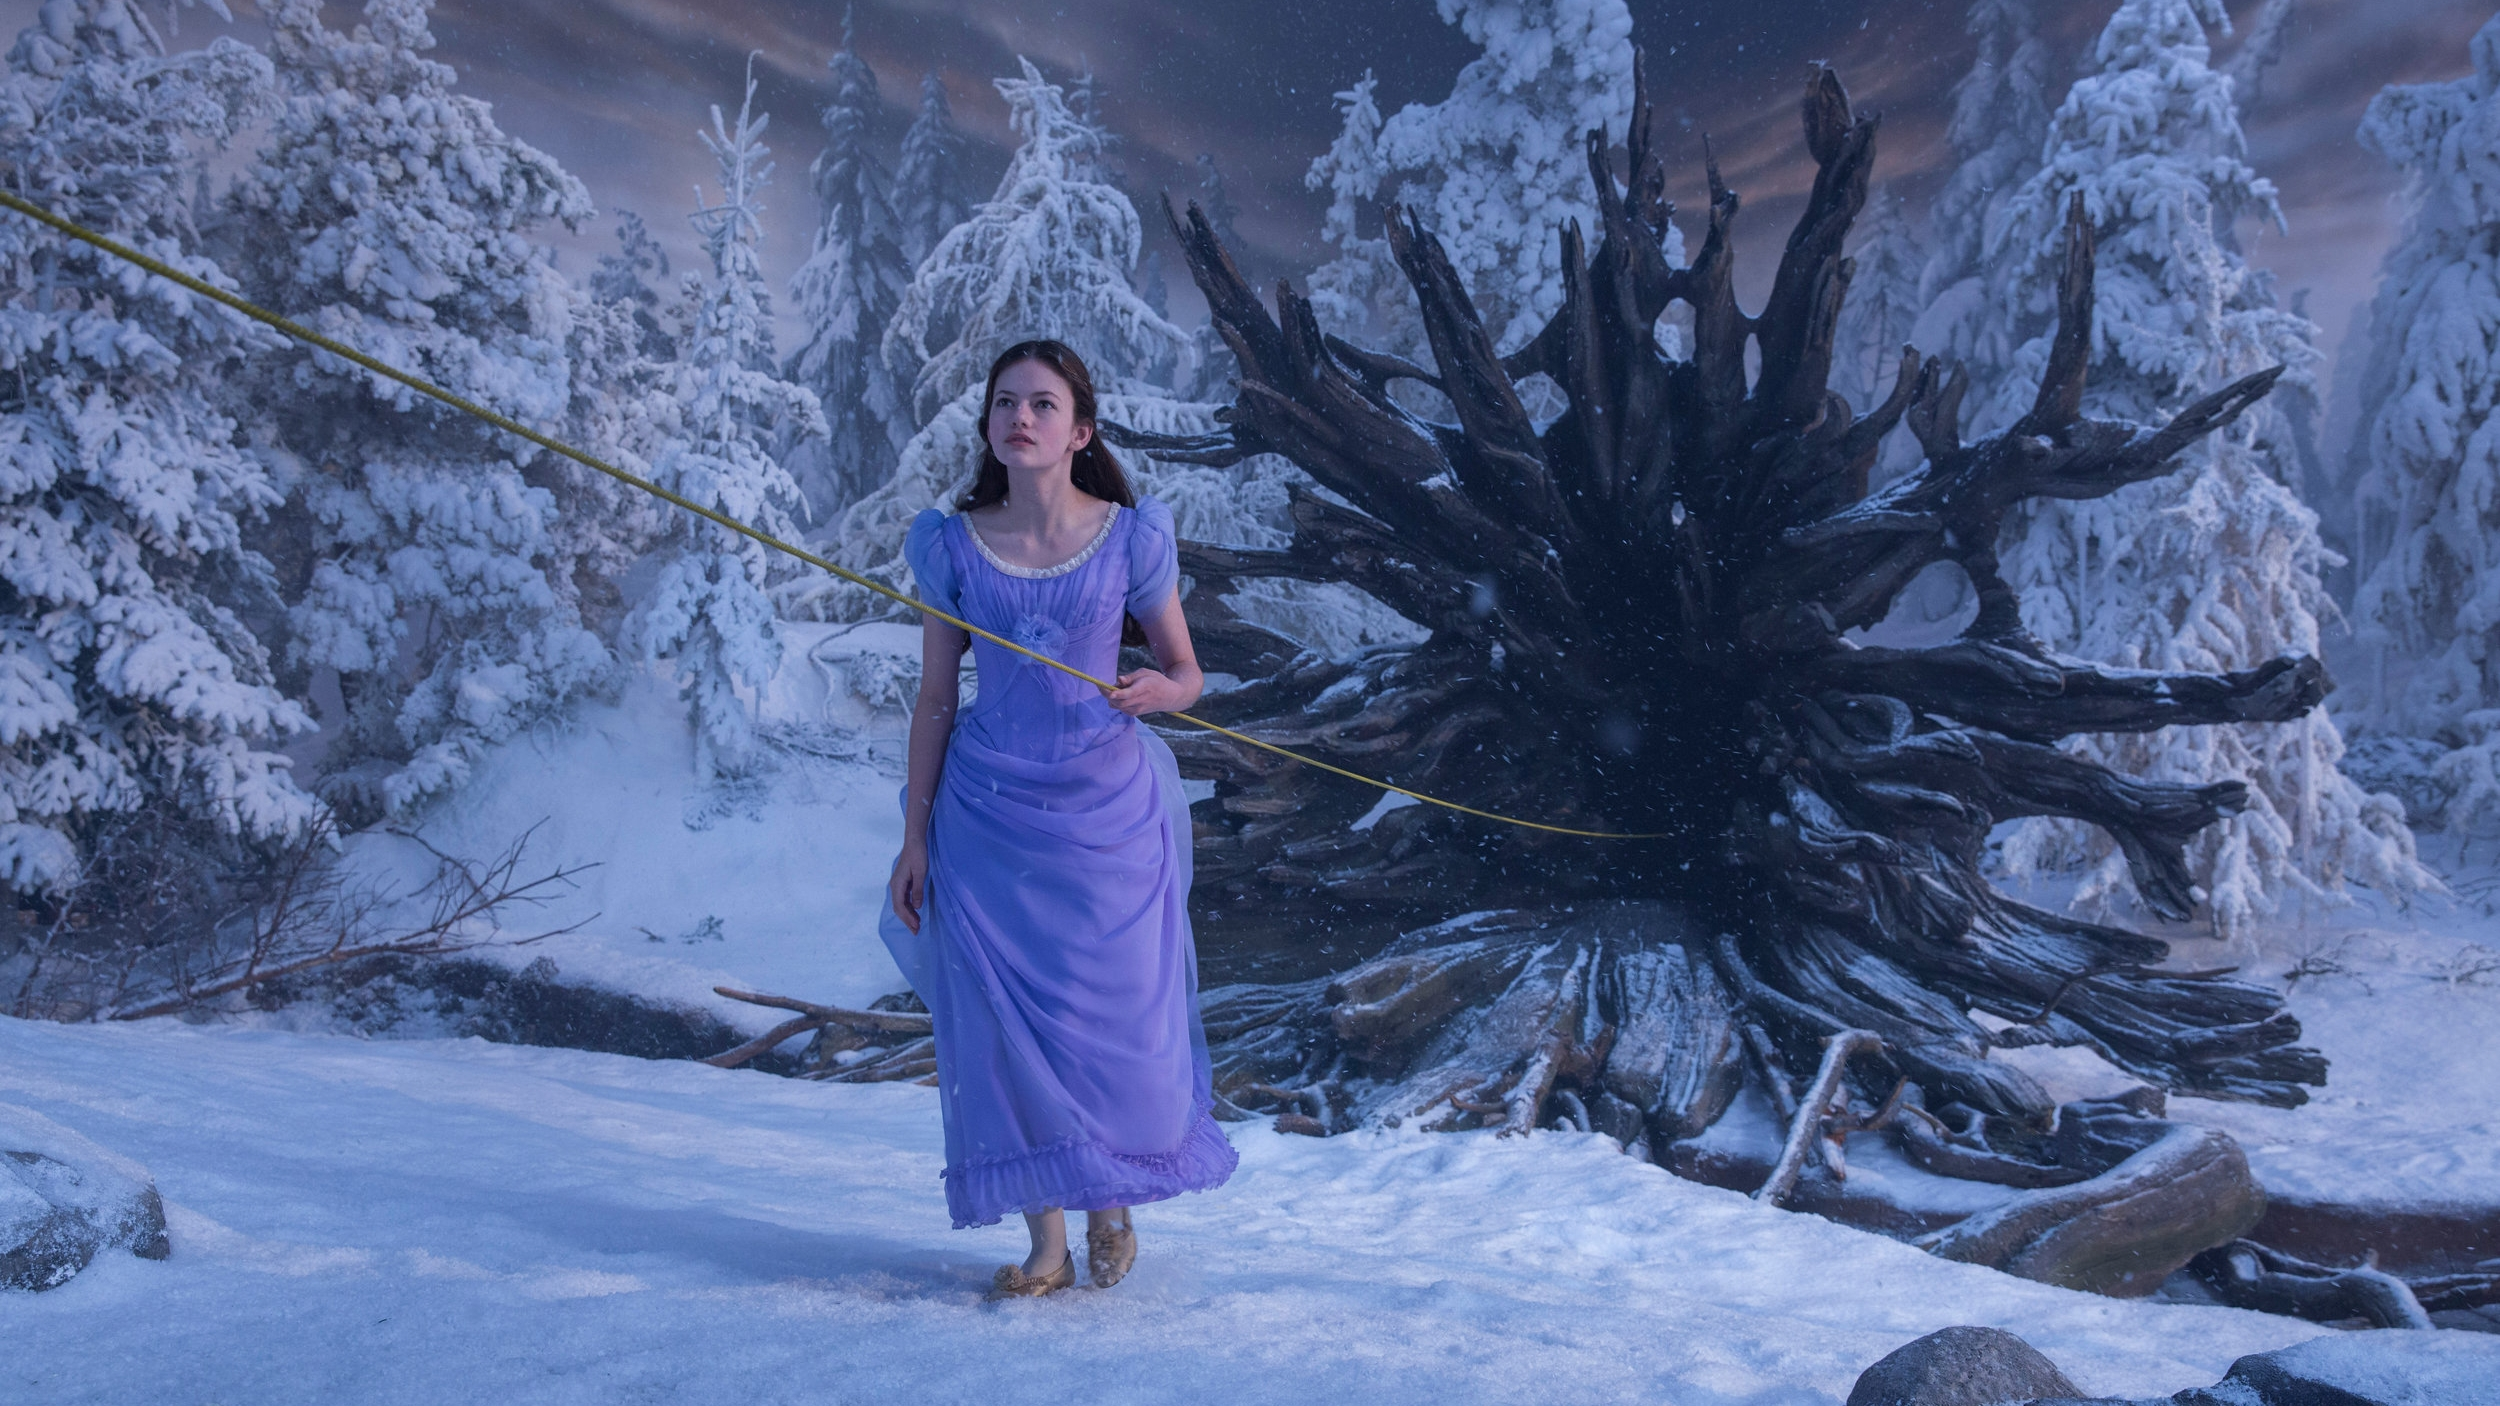 Clara (Foy) first discovering the realms.